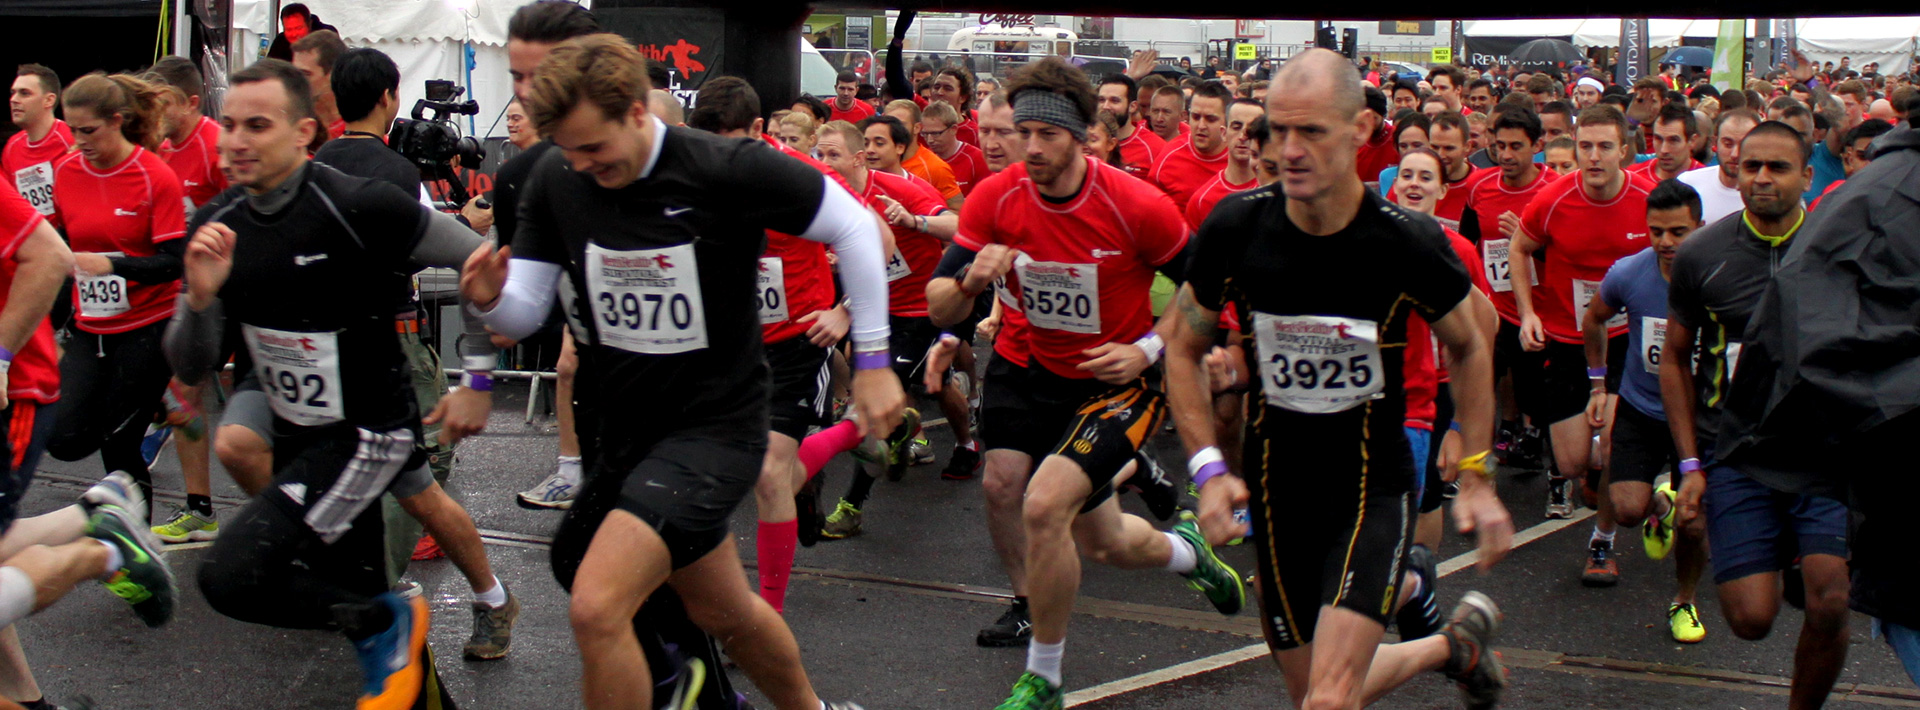 Challenge yourself - Find out more about how you can support Stonewall through challenge events